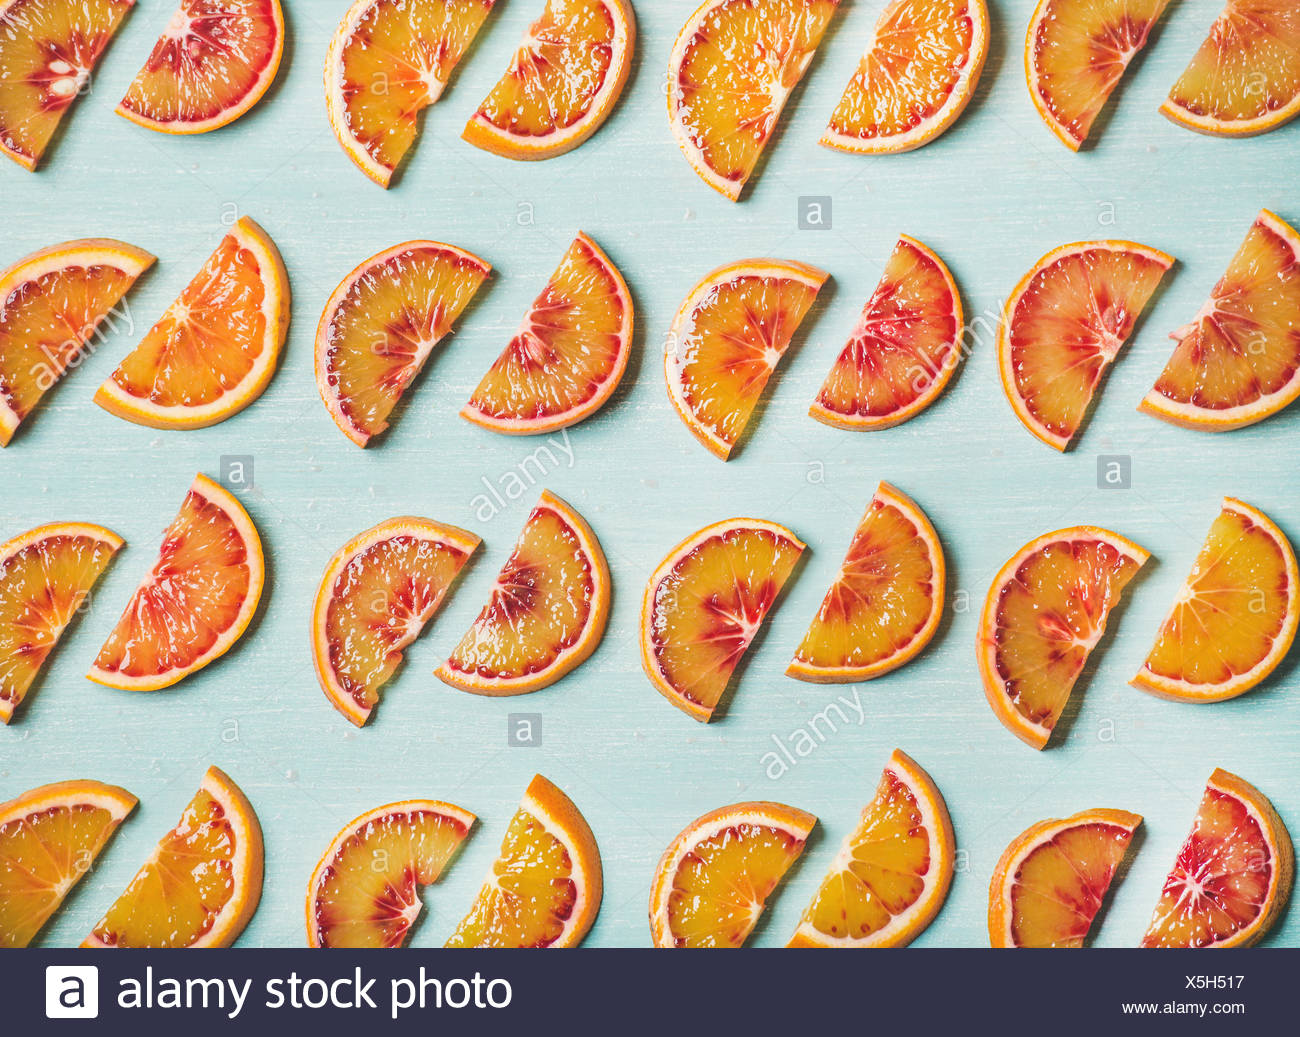 Natural fruit pattern concept. Fresh juicy blood orange slices over light blue painted table background, top view - Stock Image